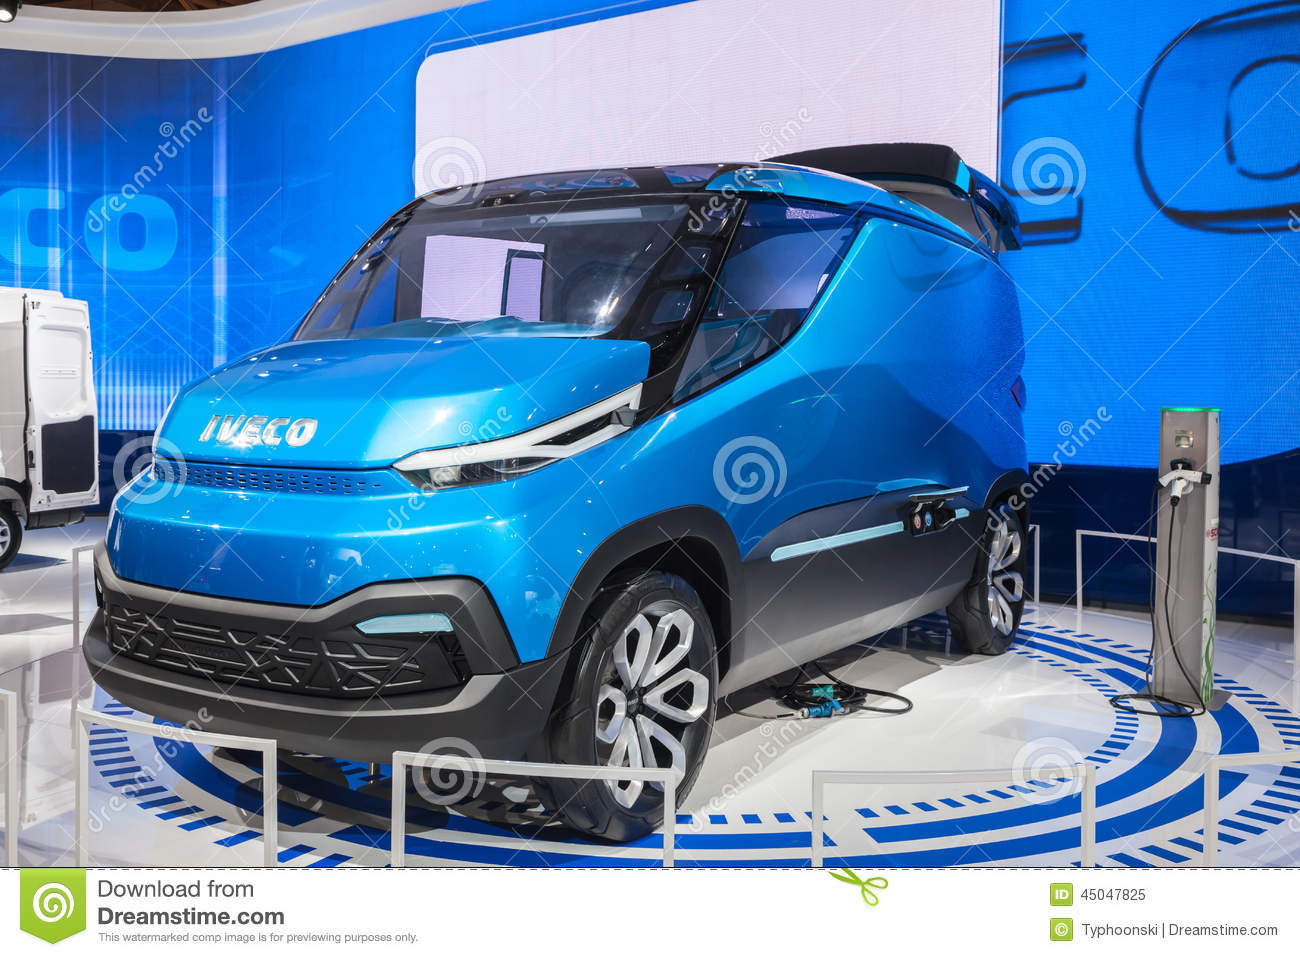 Exhibition Stand Concept : Iveco vision concept van editorial image of